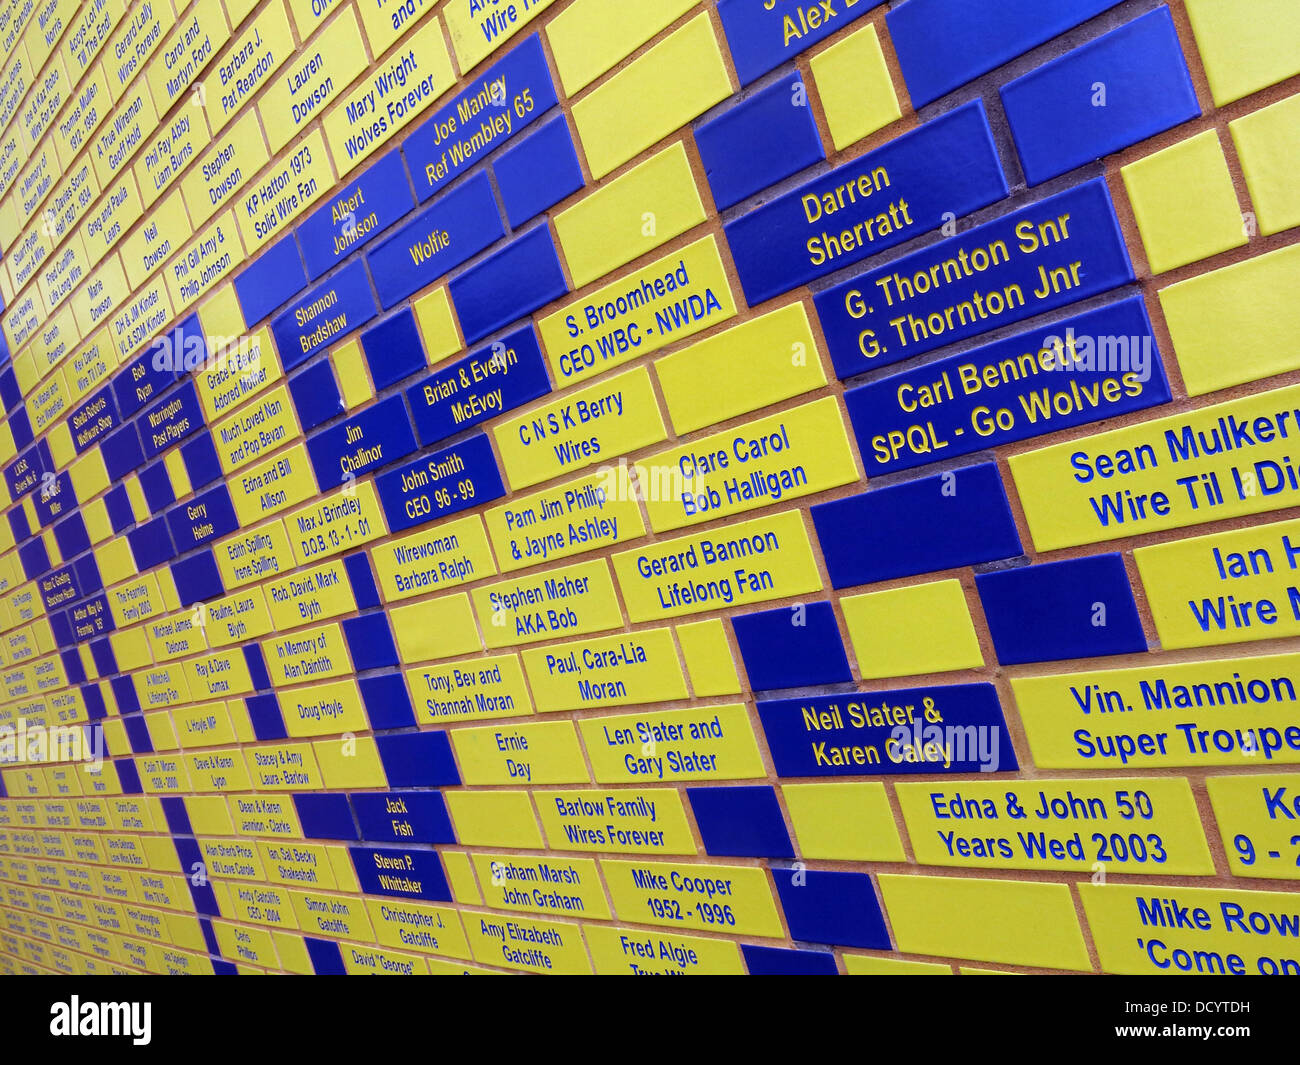 Warrington,Rugby,League,Wolve,Wolfs,history,sporting,heritage,historic,world,cup,2013,Samoa,New,Zealand,match,game,venue,for,wire,wires,football,professional,statue,Primrose,and,hall,of,fame,inductee,Wilderspool,gotonysmith,Jones,Halliwell,Rugby,stadium,Winwick,Road,Warrington,WA2,7NE,United,Kingdom,WA27NE,Australias,100,Greatest,Players,(1908–2007),which,was,commissioned,by,the,National,Rugby,League,and,the,Australian,Rugby,League,to,celebrate,the,codes,centenary,year,in,Australia,Bevan,went,on,to,be,named,as,one,of,the,wingers,along,with,Ken,Irvine,in,Australian,rugby,leagues,Team,of,the,Century,Announced,on,17,April,2008,the,team,is,the,panels,majority,choice,for,each,of,the,thirteen,starting,positions,and,four,interchange,players,Buy Pictures of,Buy Images Of